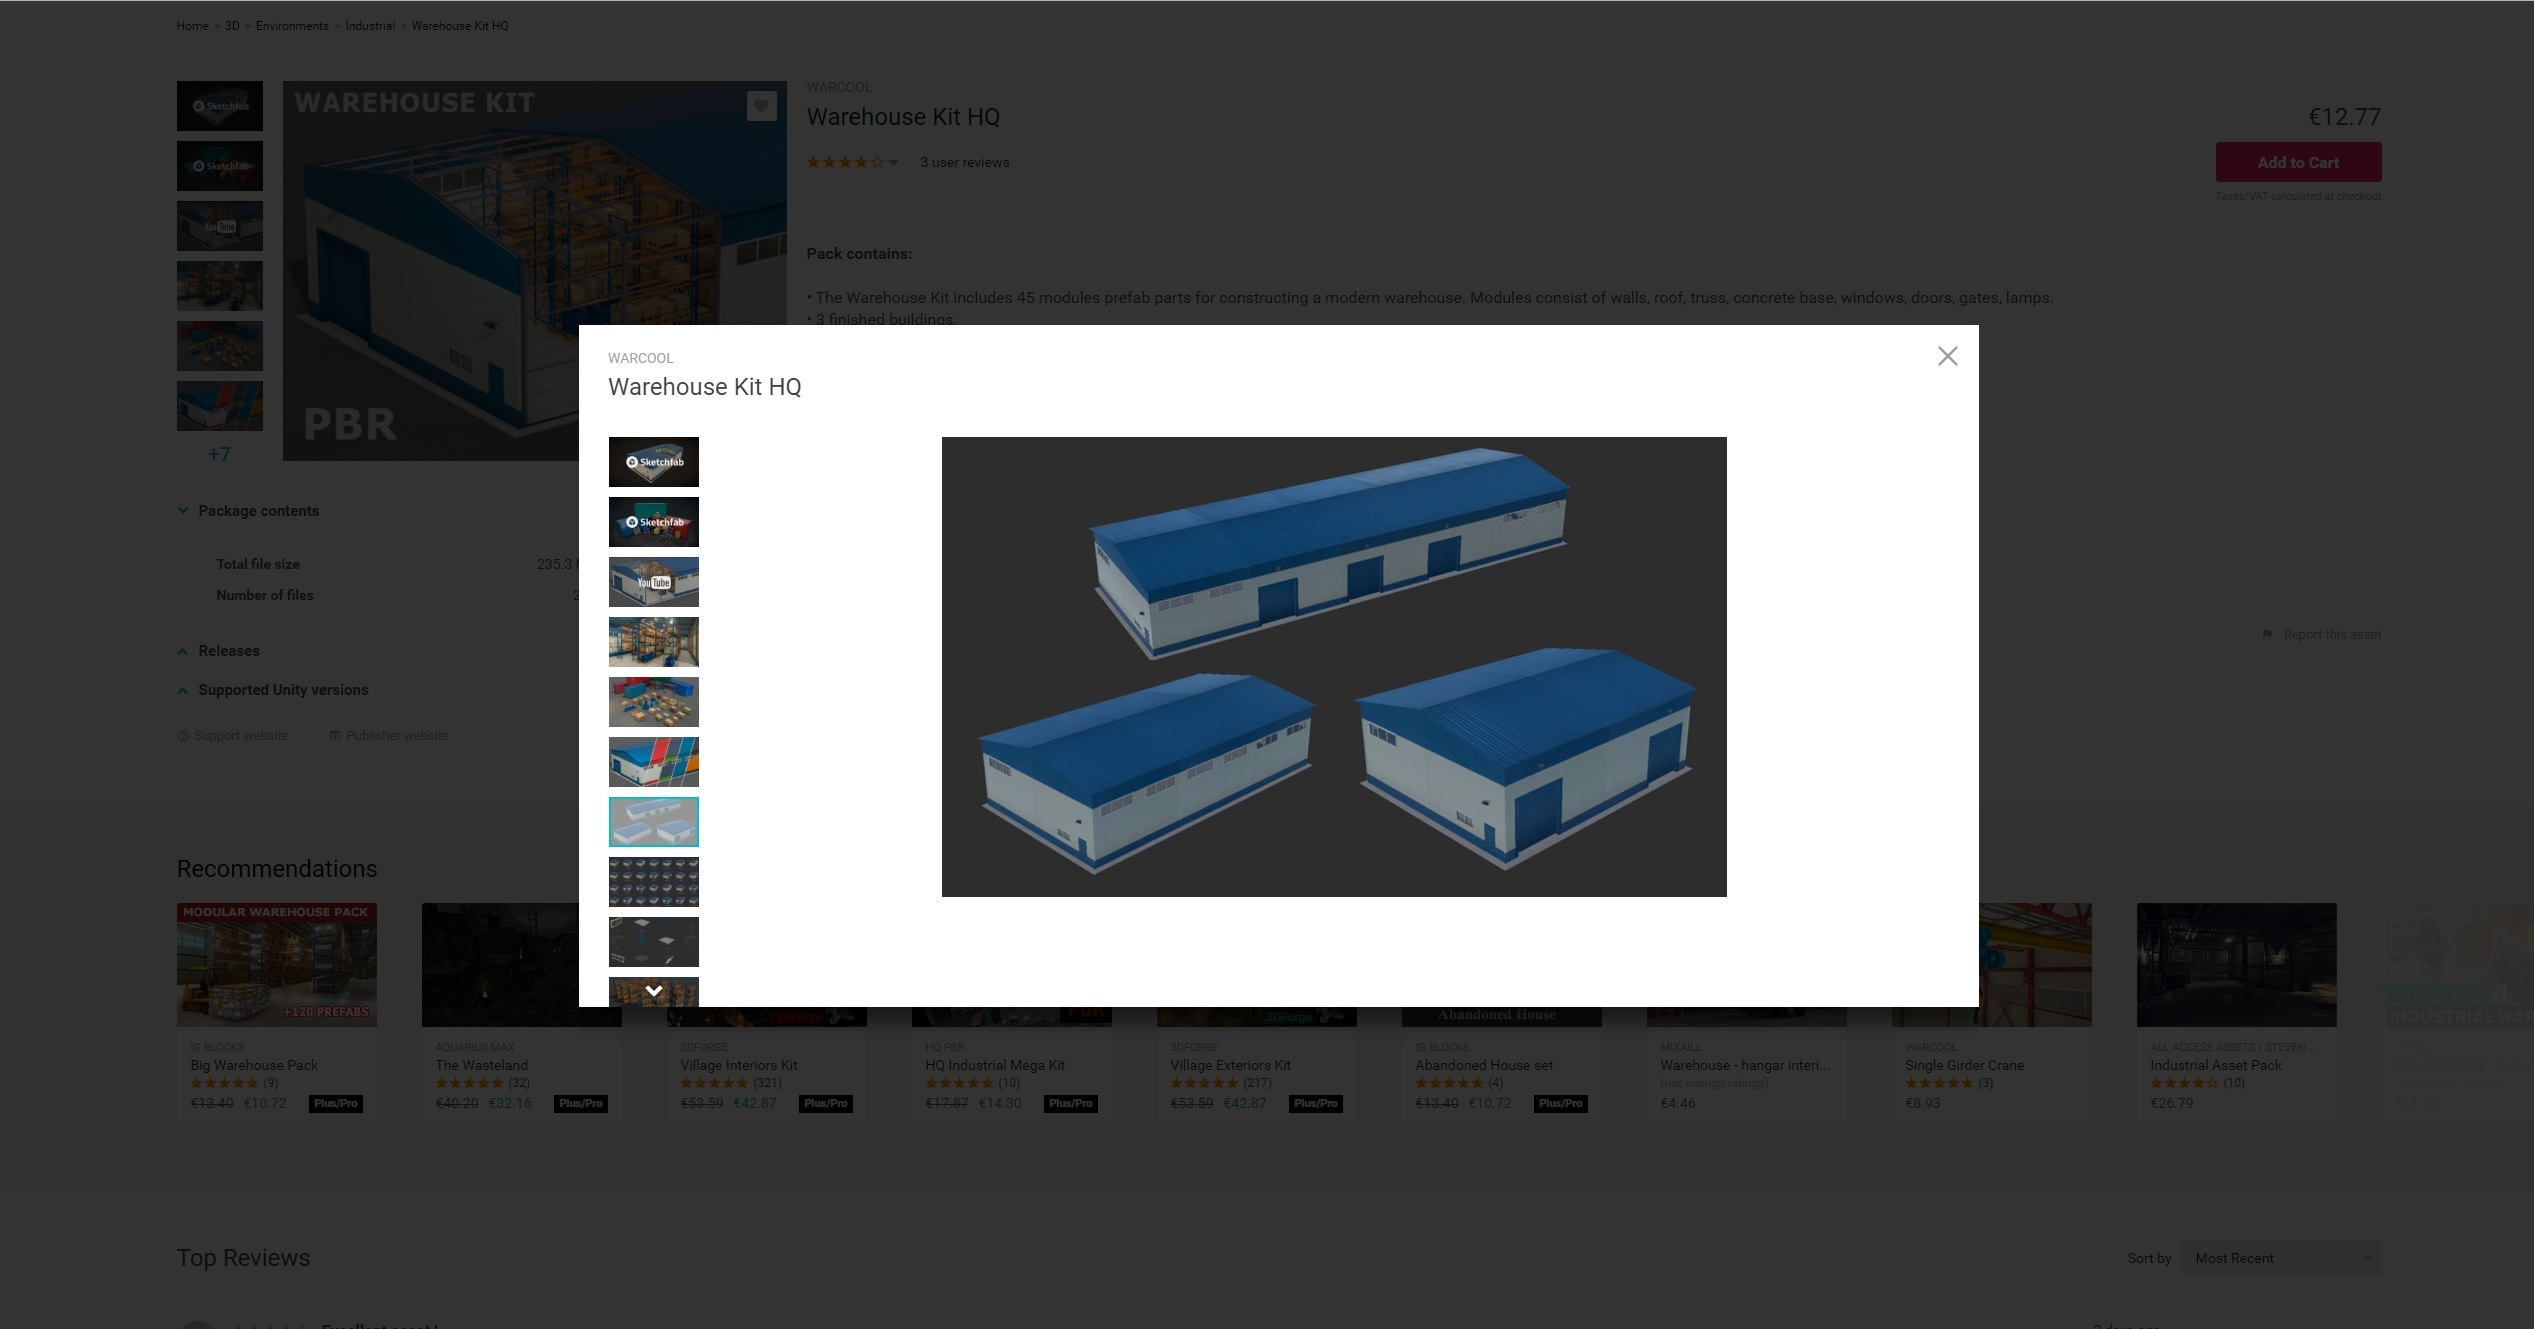 Meshes/Models from Blender or find from internet? - Unity Forum